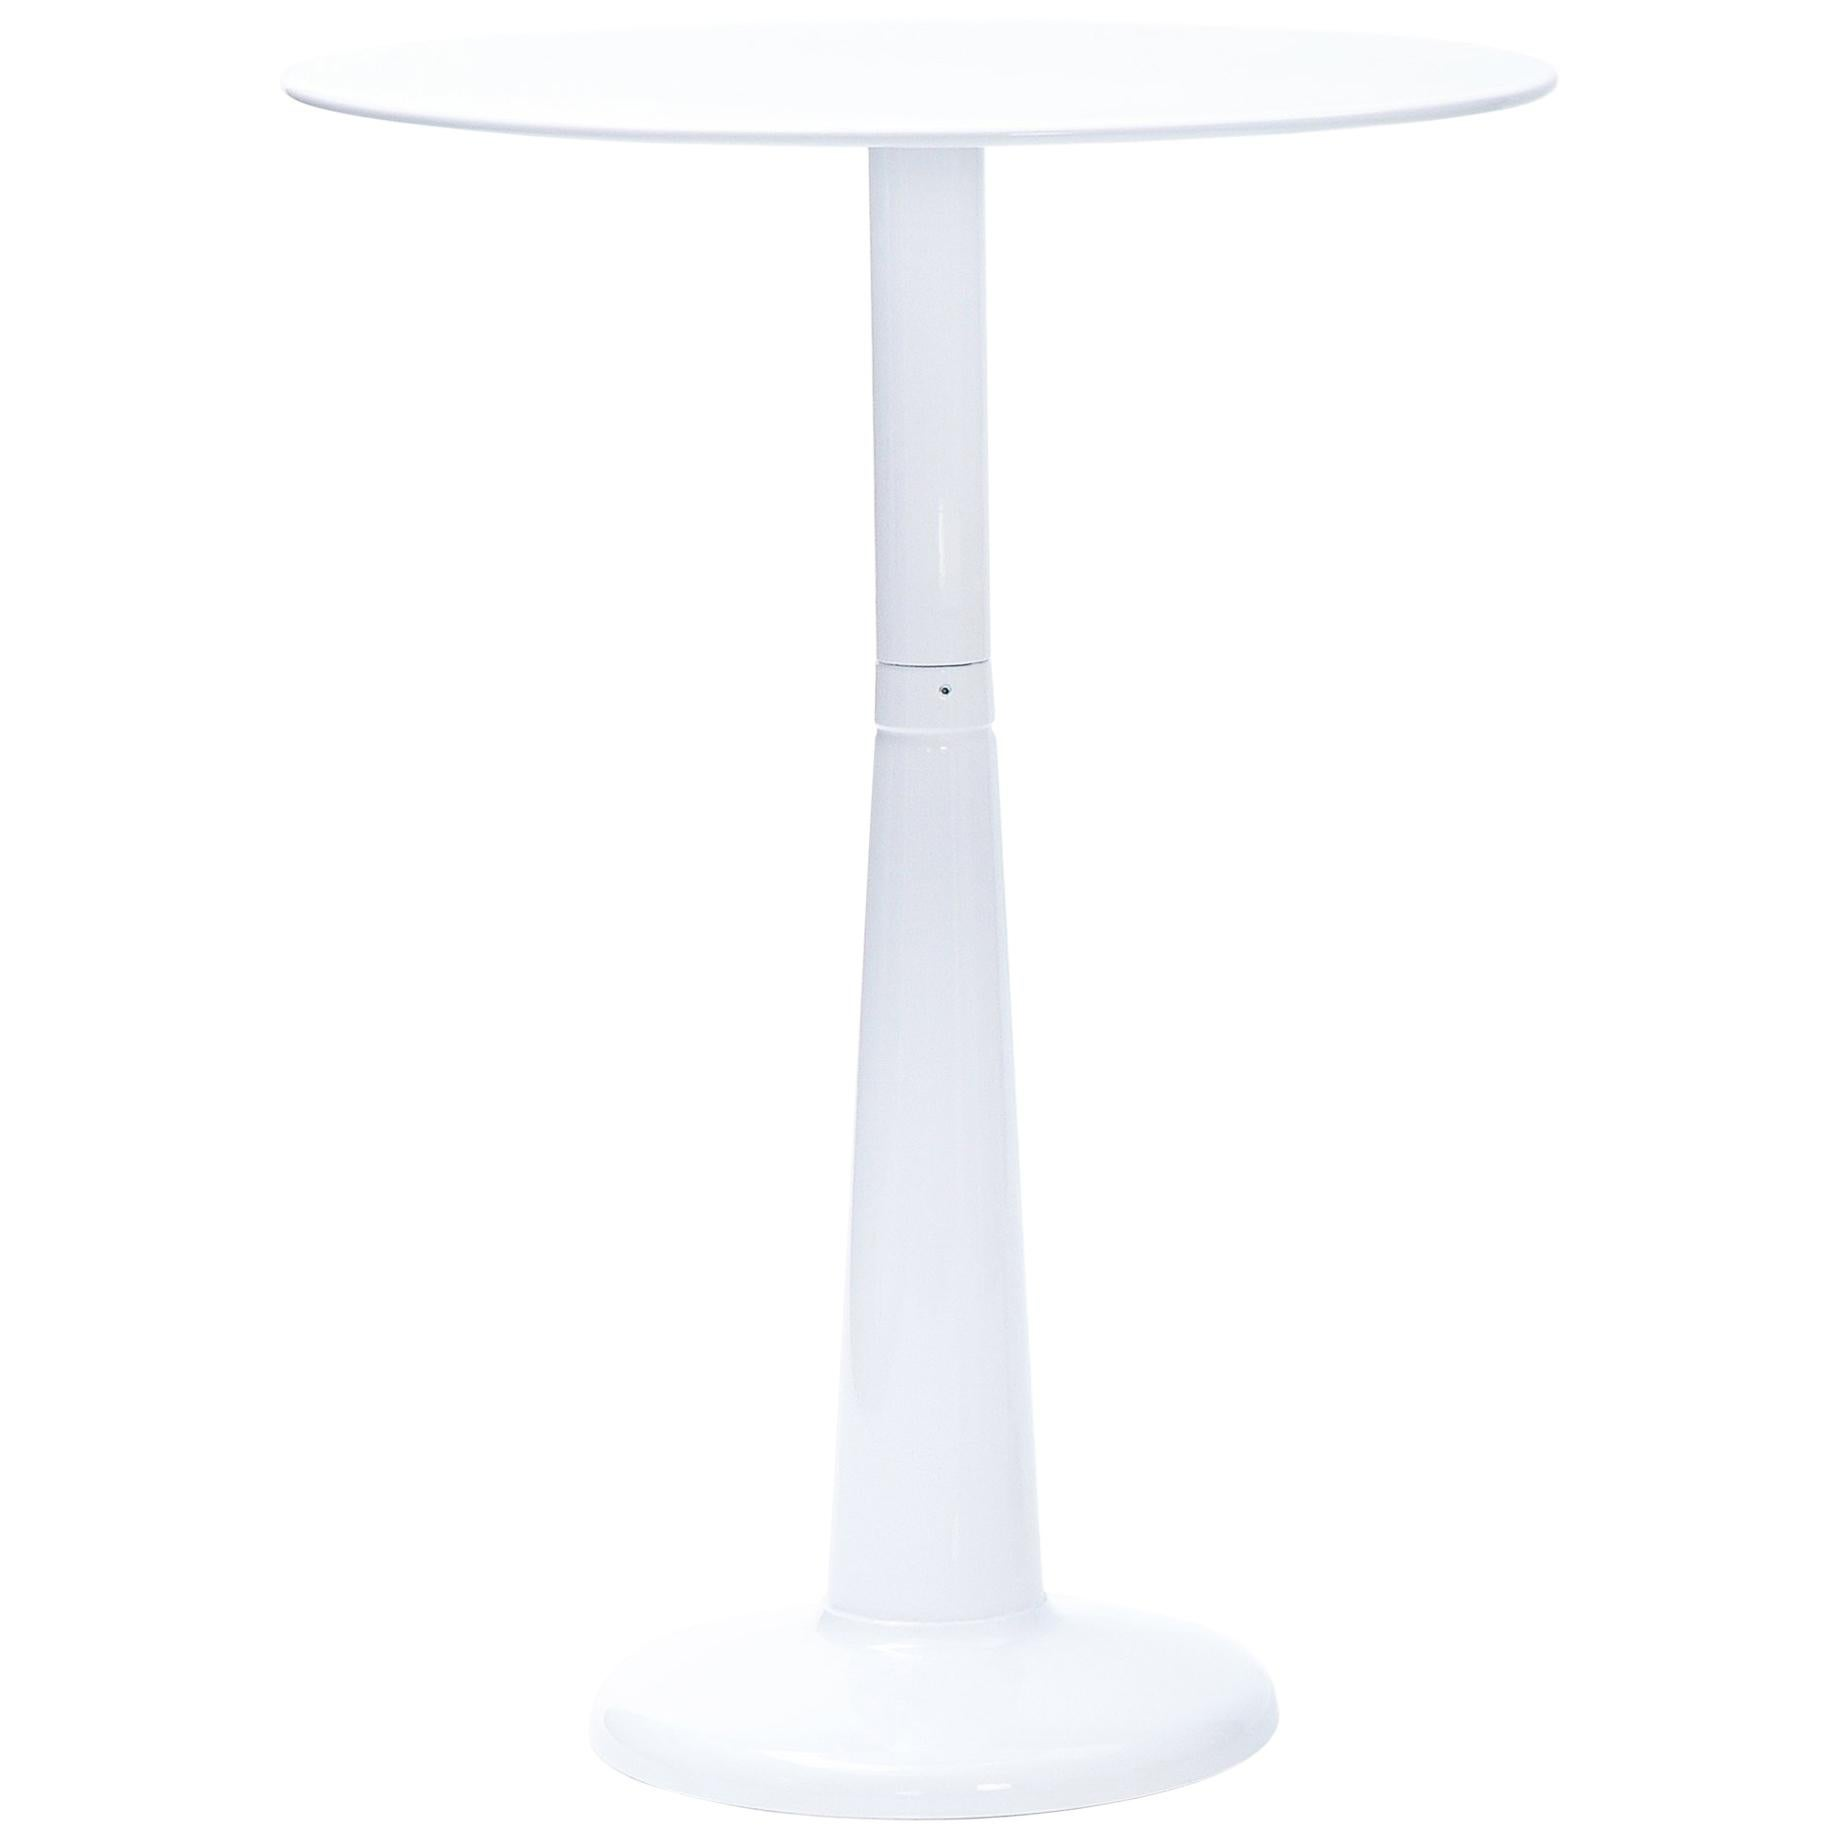 G High Table 60 in Essential Colors by Chantal Andriot & Tolix